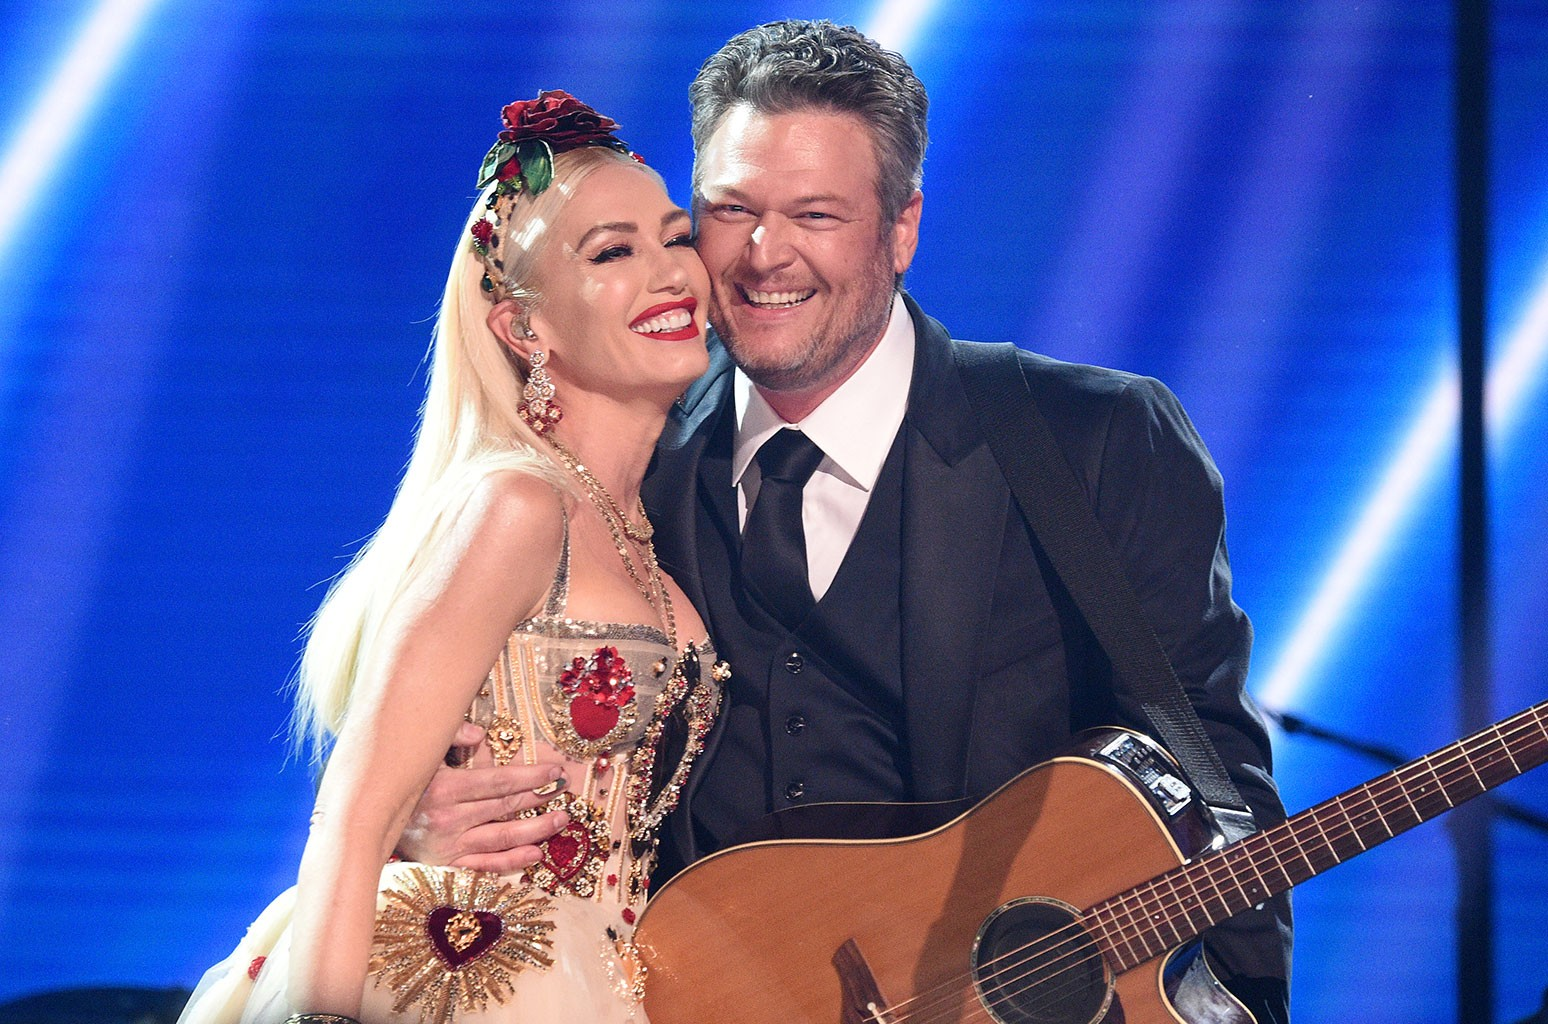 Blake Shelton Tops Country Airplay With Gwen Stefani Duet Nobody But You I Connect With Every Lyric Billboard I'm all wrapped up in his arms, but you're the one i really want truly he's the nicest guy, but i want you and i don't know why we fought more than tyson and holyfield, something about us felt so. blake shelton tops country airplay with